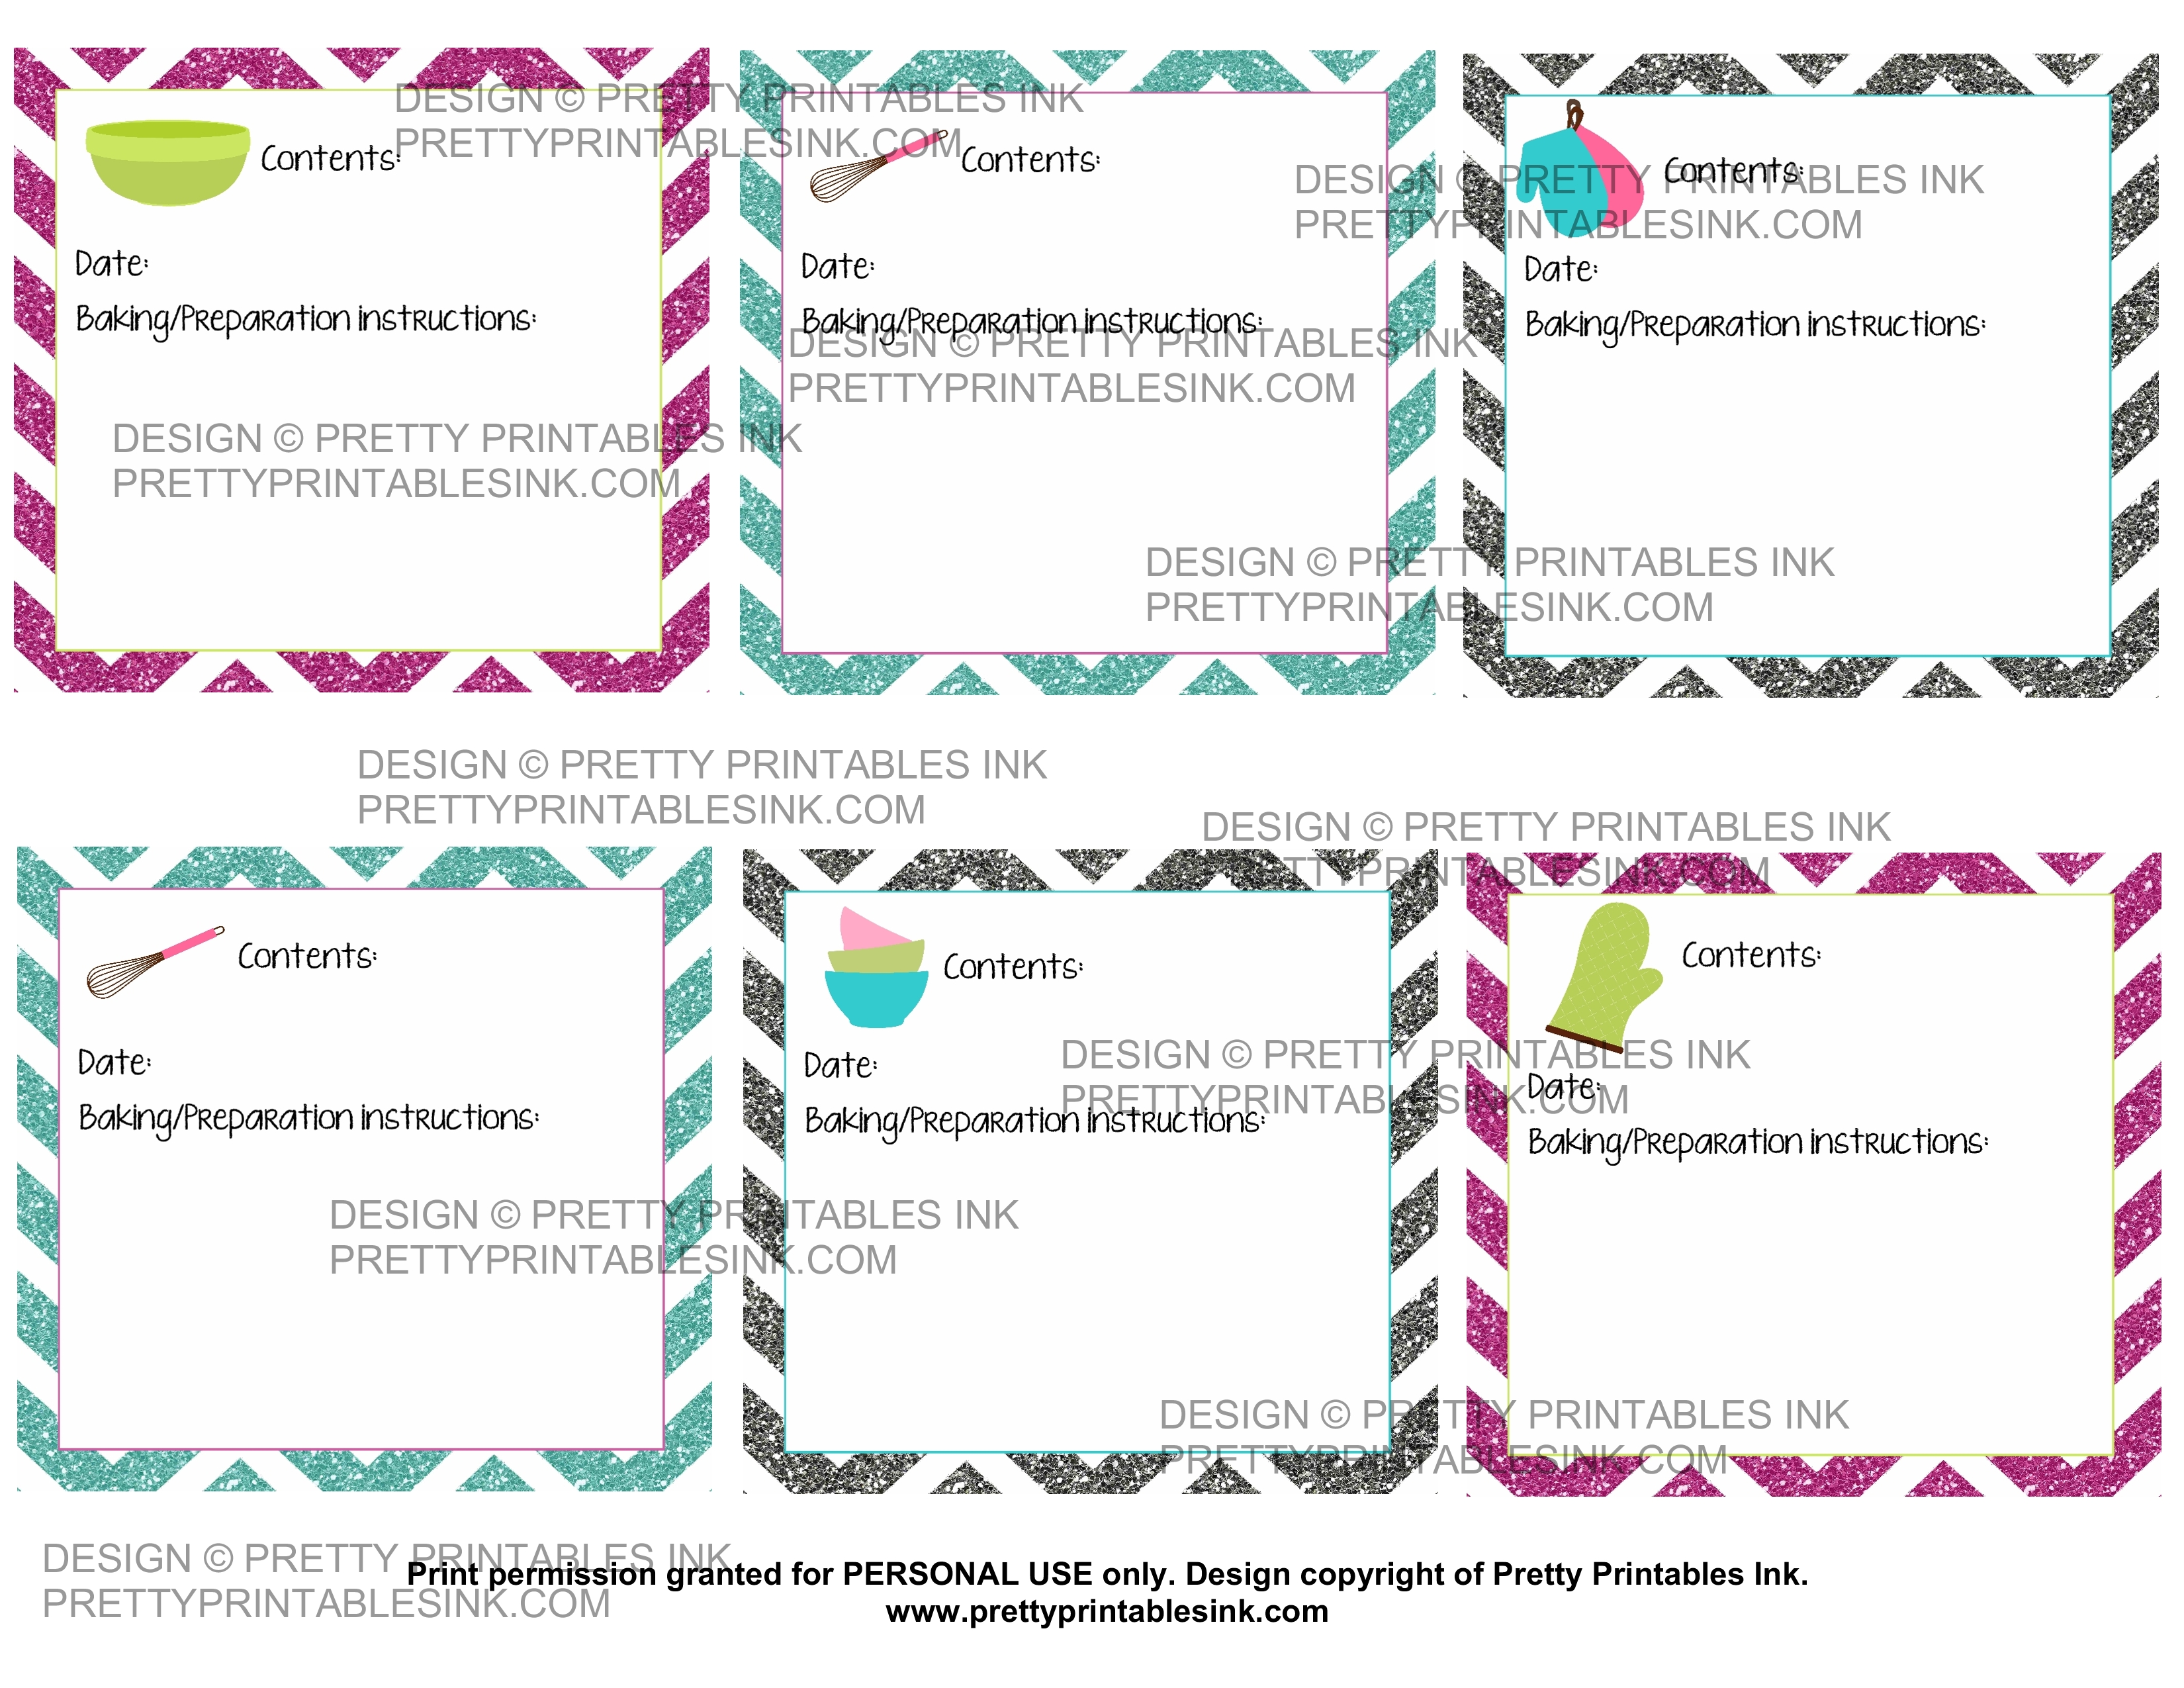 photo about Printable Freezer Labels titled Freebie Friday: Printable freezer evening meal labels Attractive